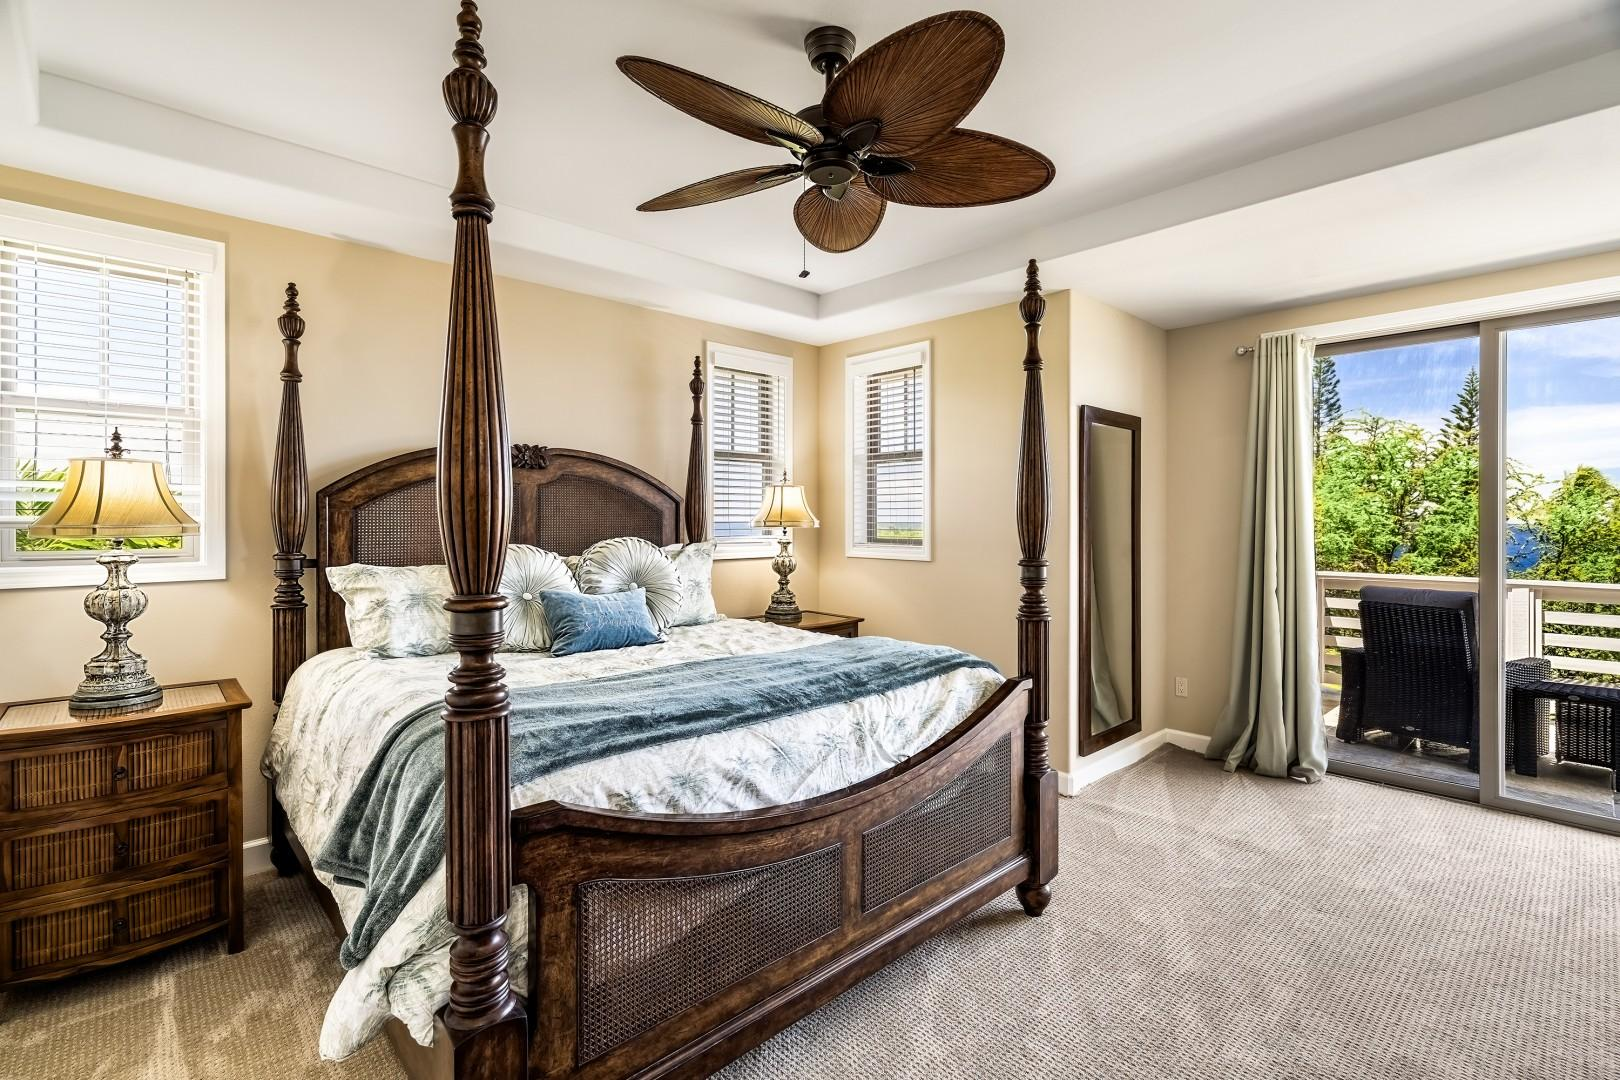 Master bedroom fit for royalty!